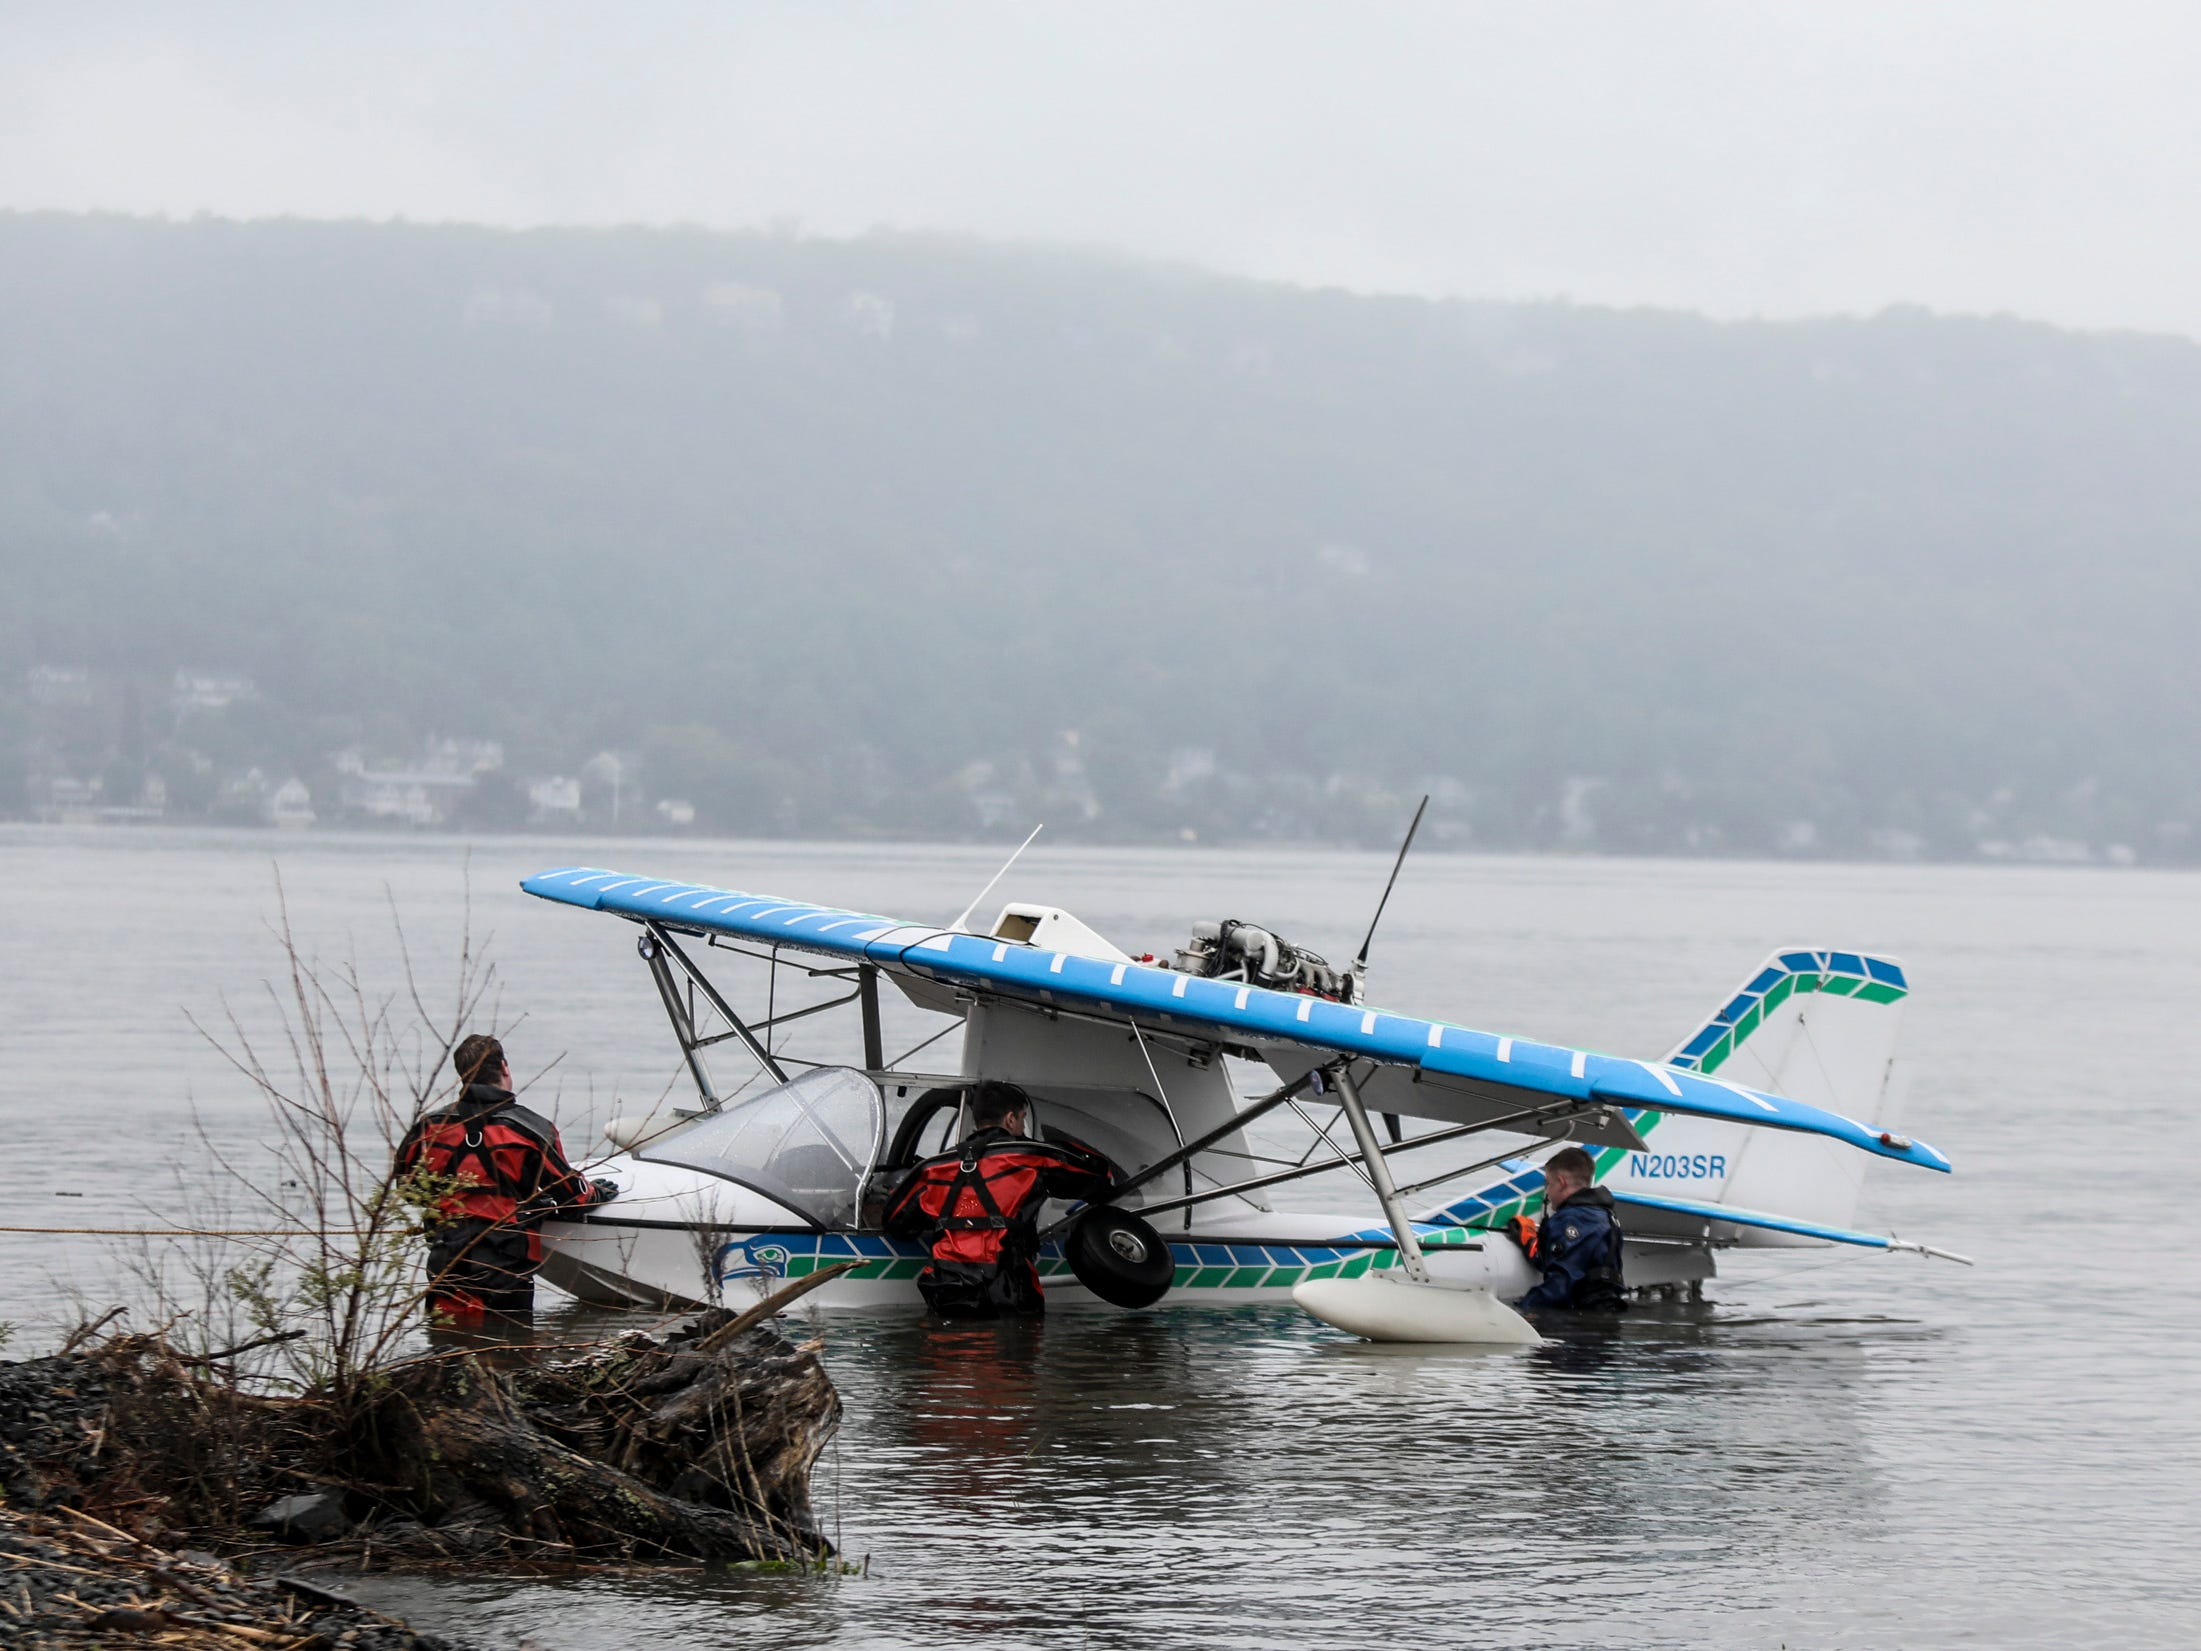 A sea plane made an emergency landing off of Dobbs Ferry and was pulled to shore by the Piermont Fire Dept on Tuesday, May 14, 2019.